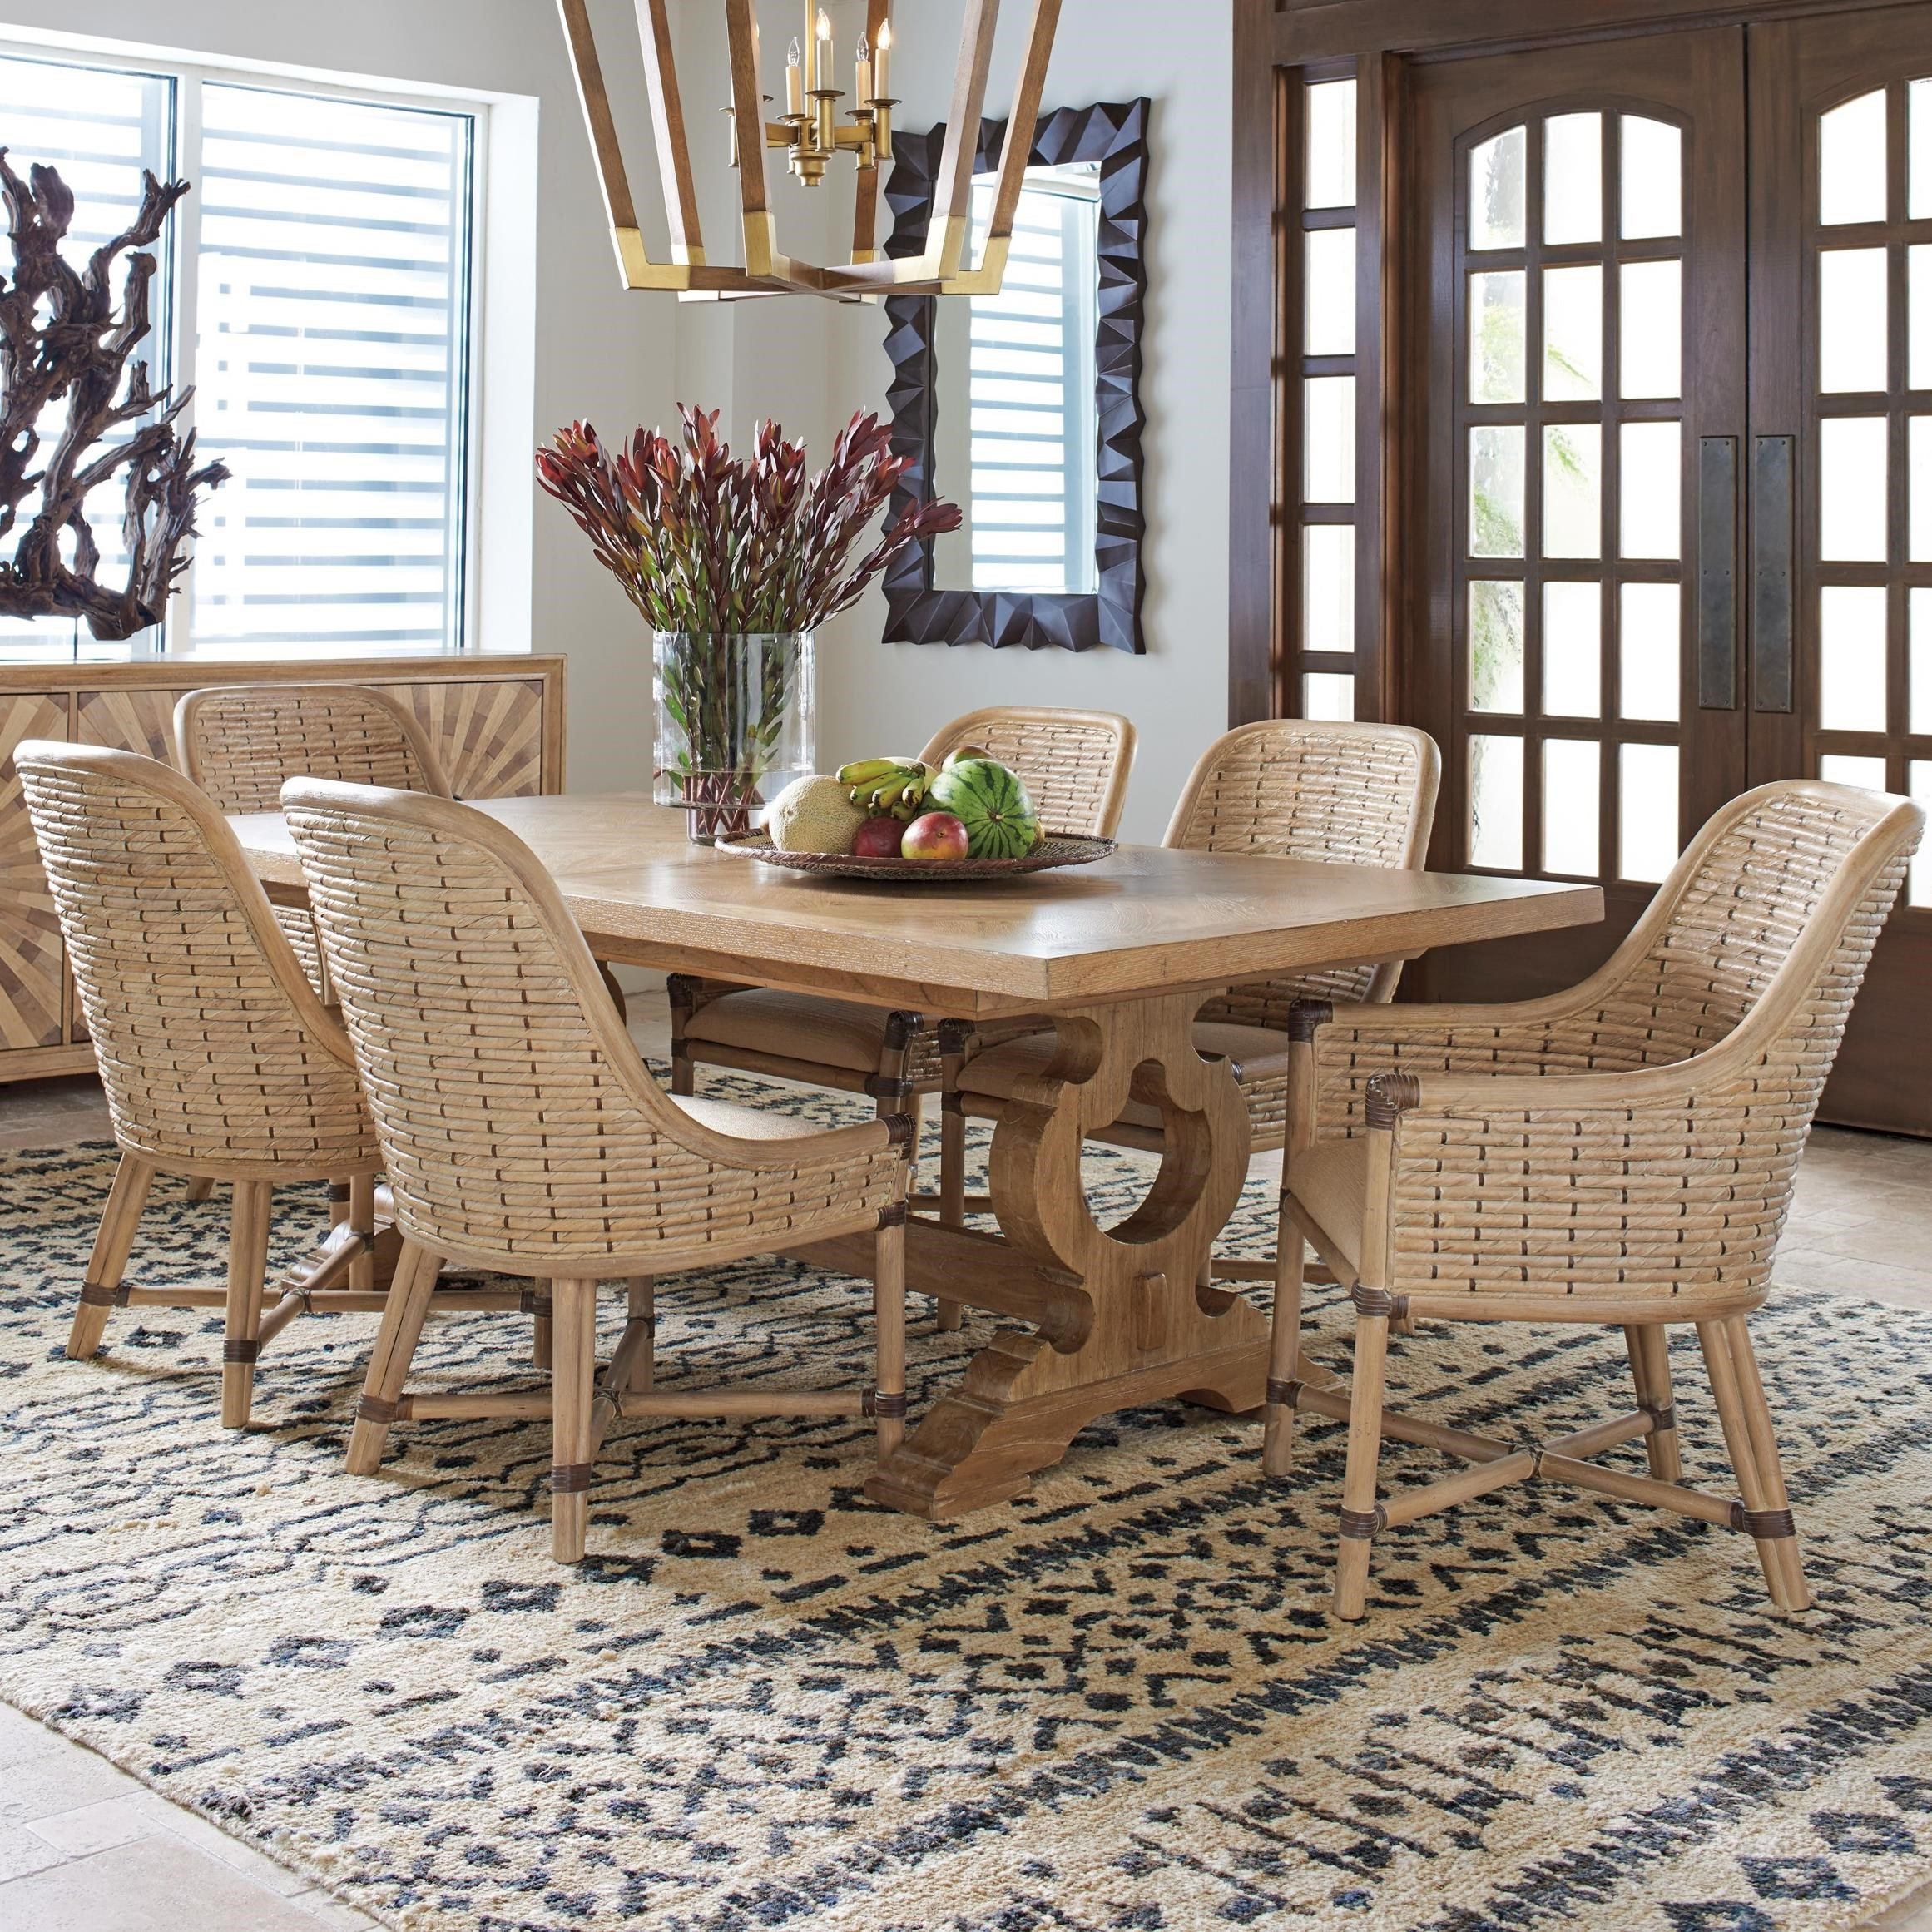 Los Altos 7 Pc Dining Set by Tommy Bahama Home at Baer's Furniture